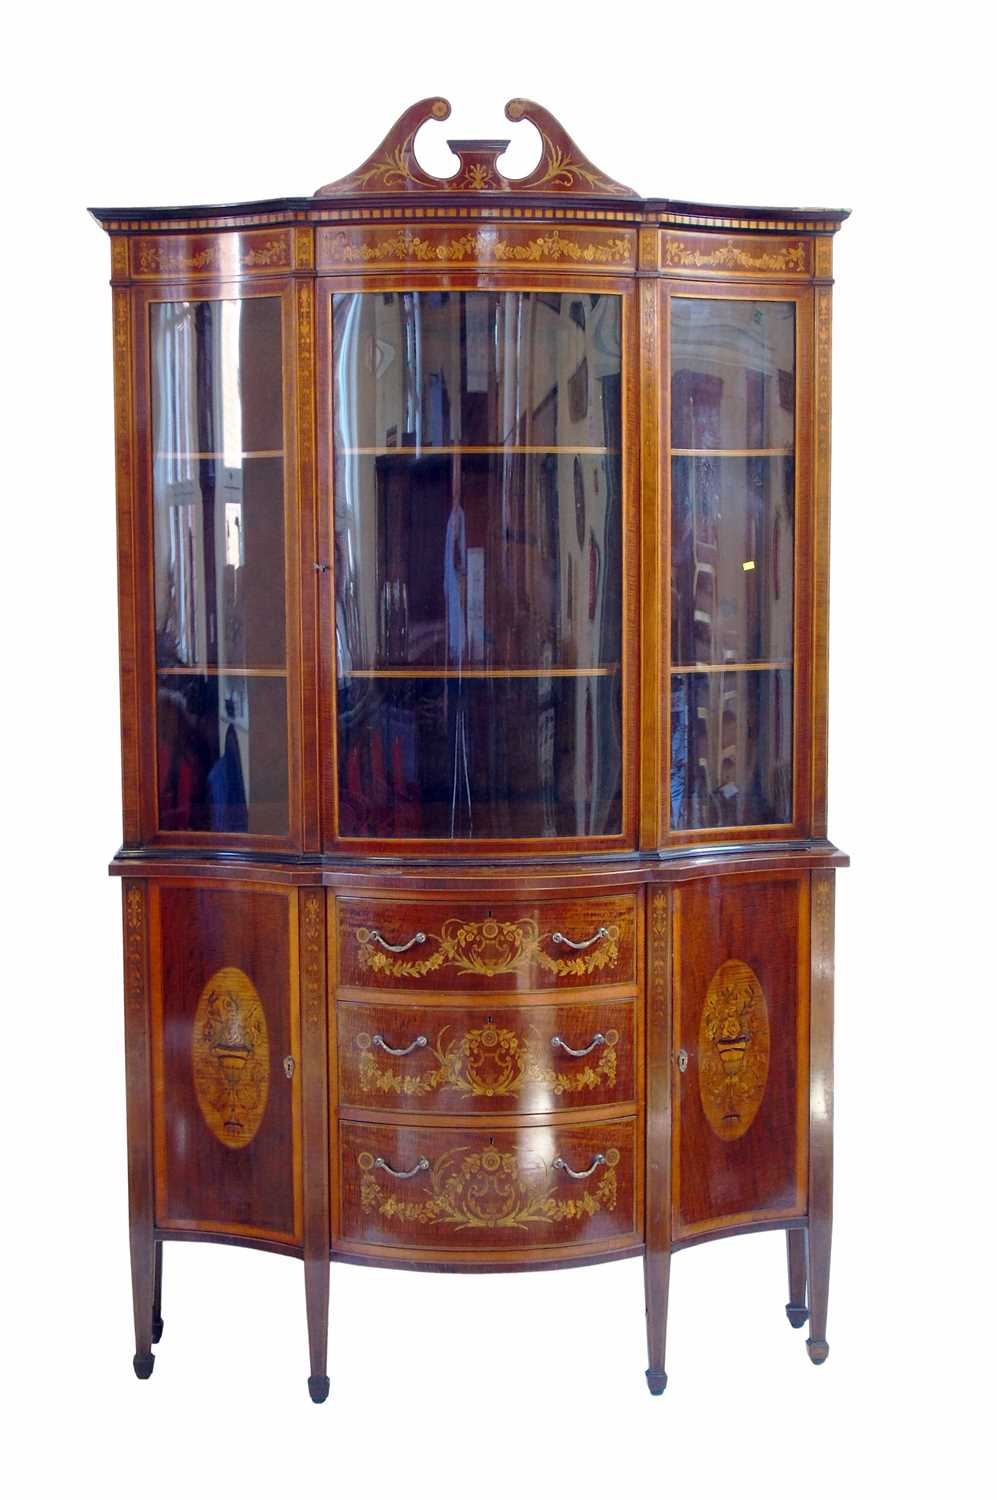 491 - Late 19th century serpentine front, glazed display cabinet by Edwards & Roberts.